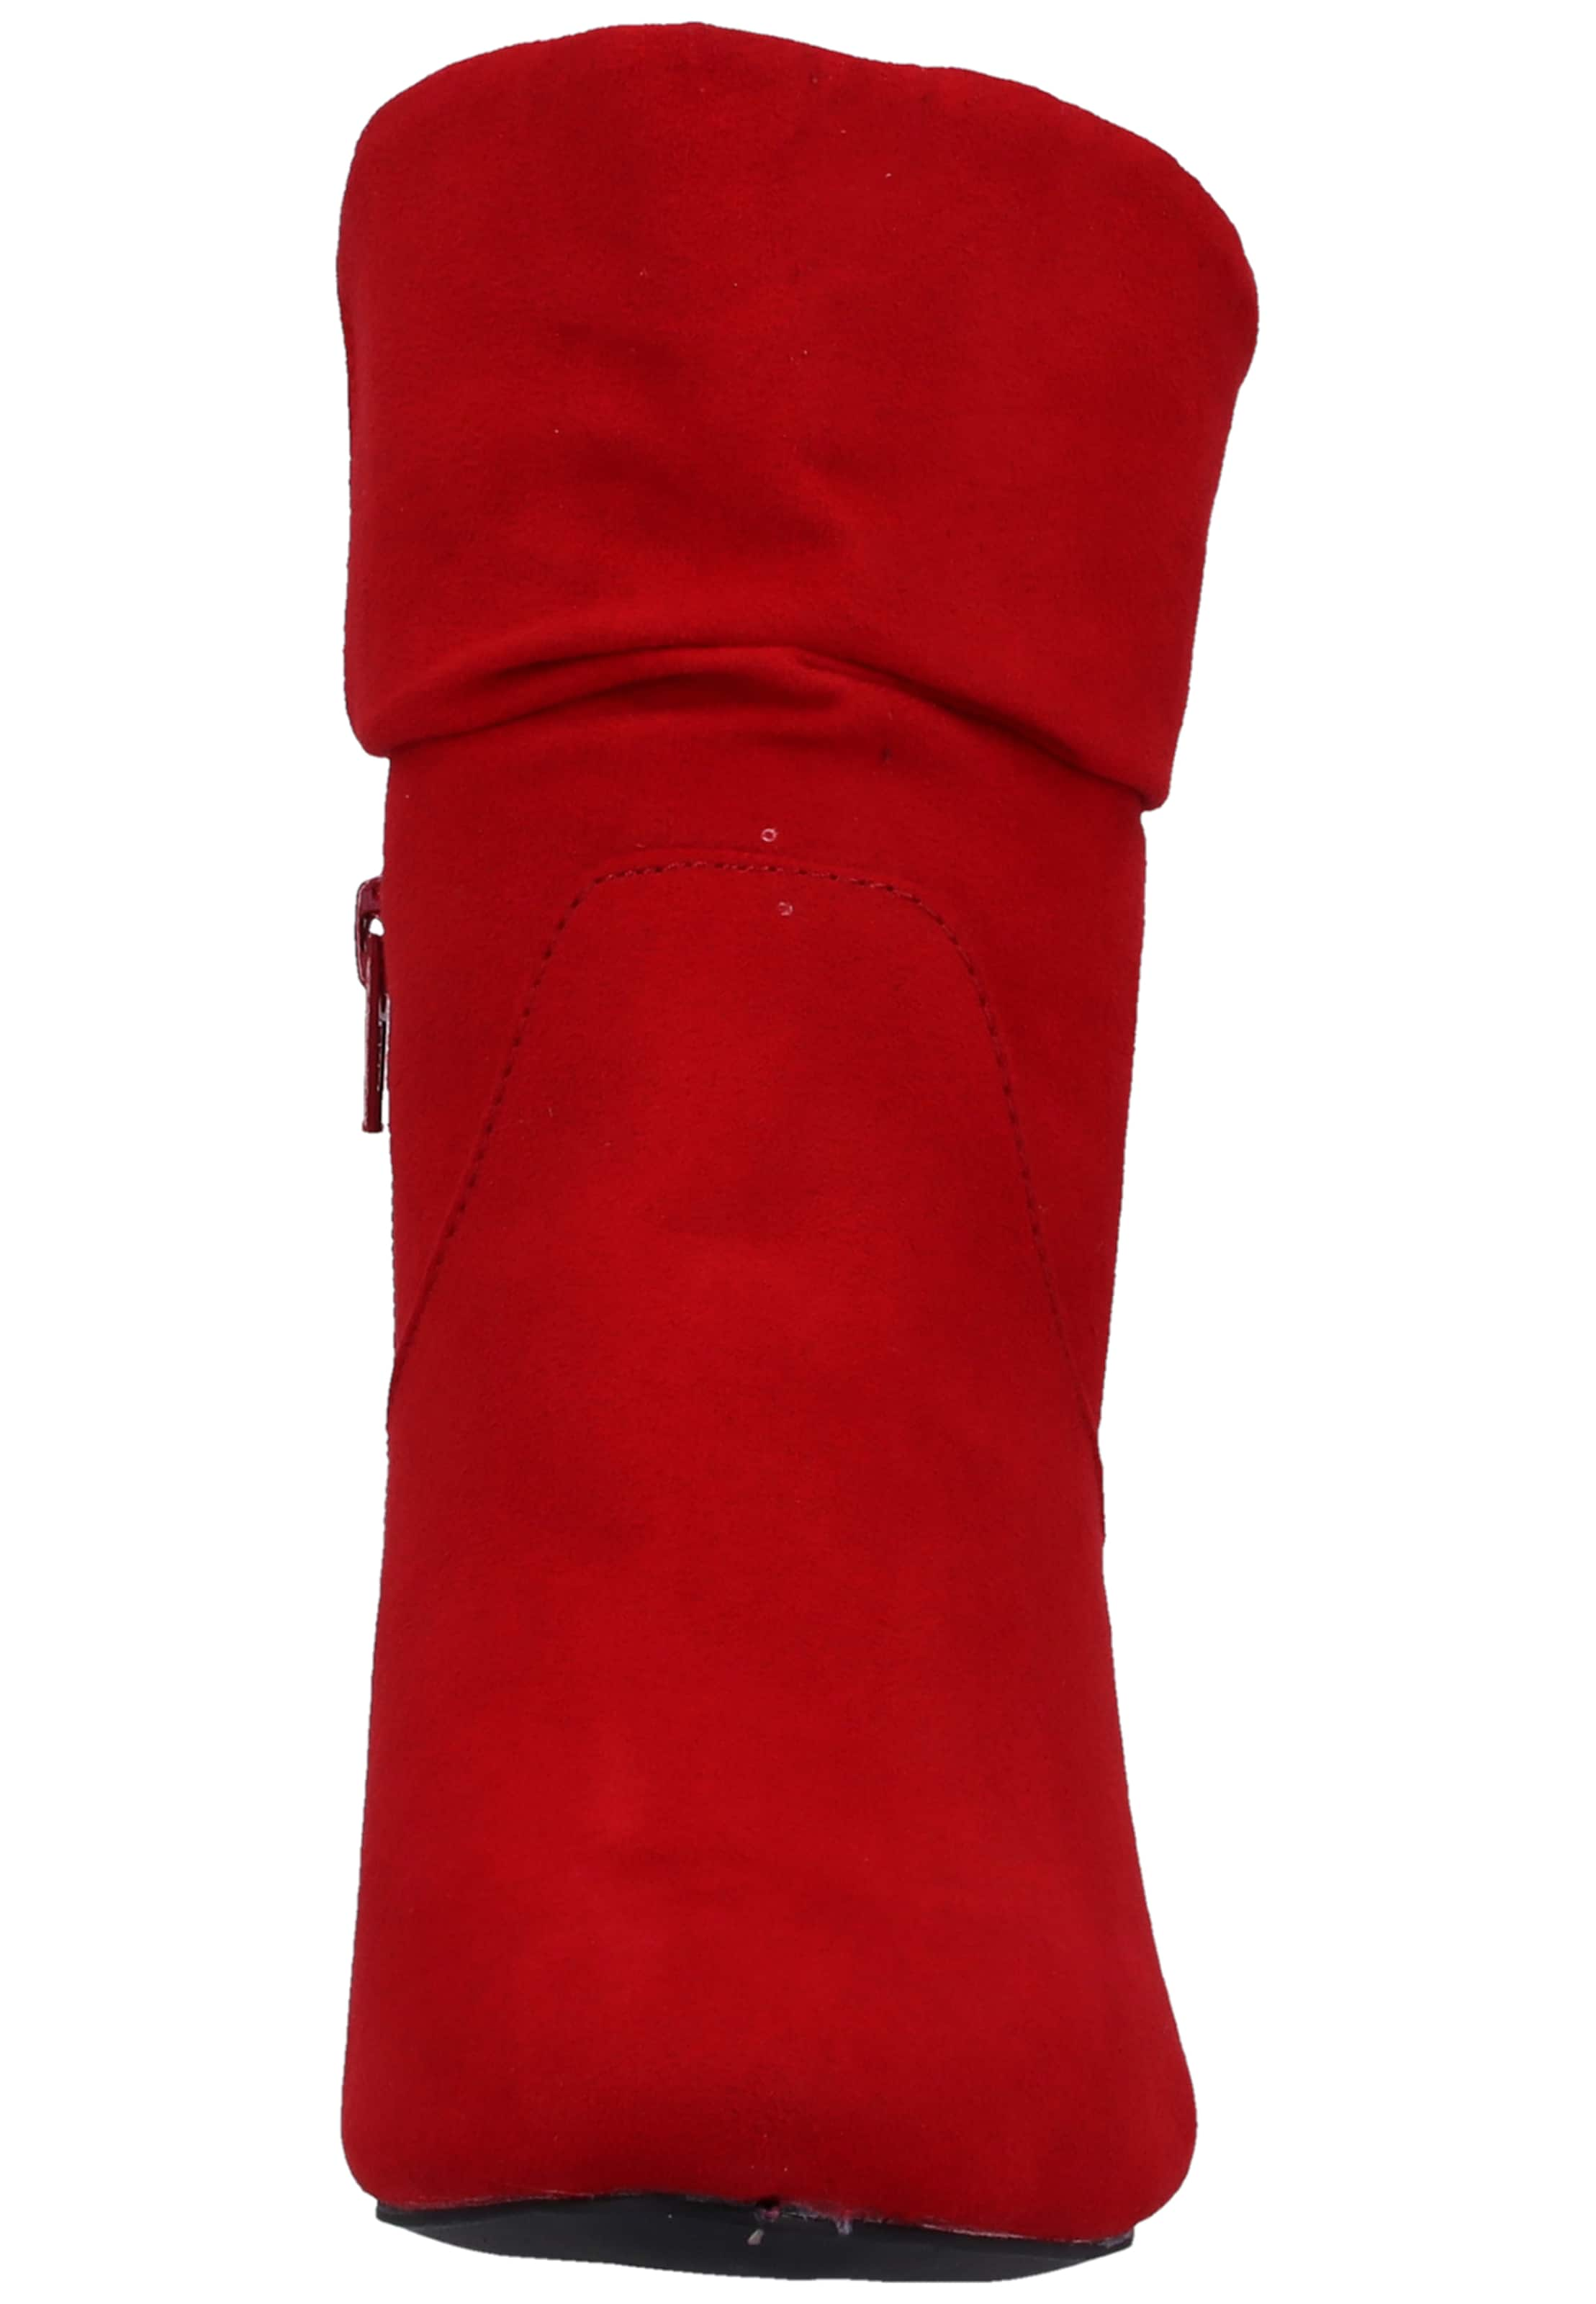 In Label Red Stiefelette Rot S oliver hdrsQtCx